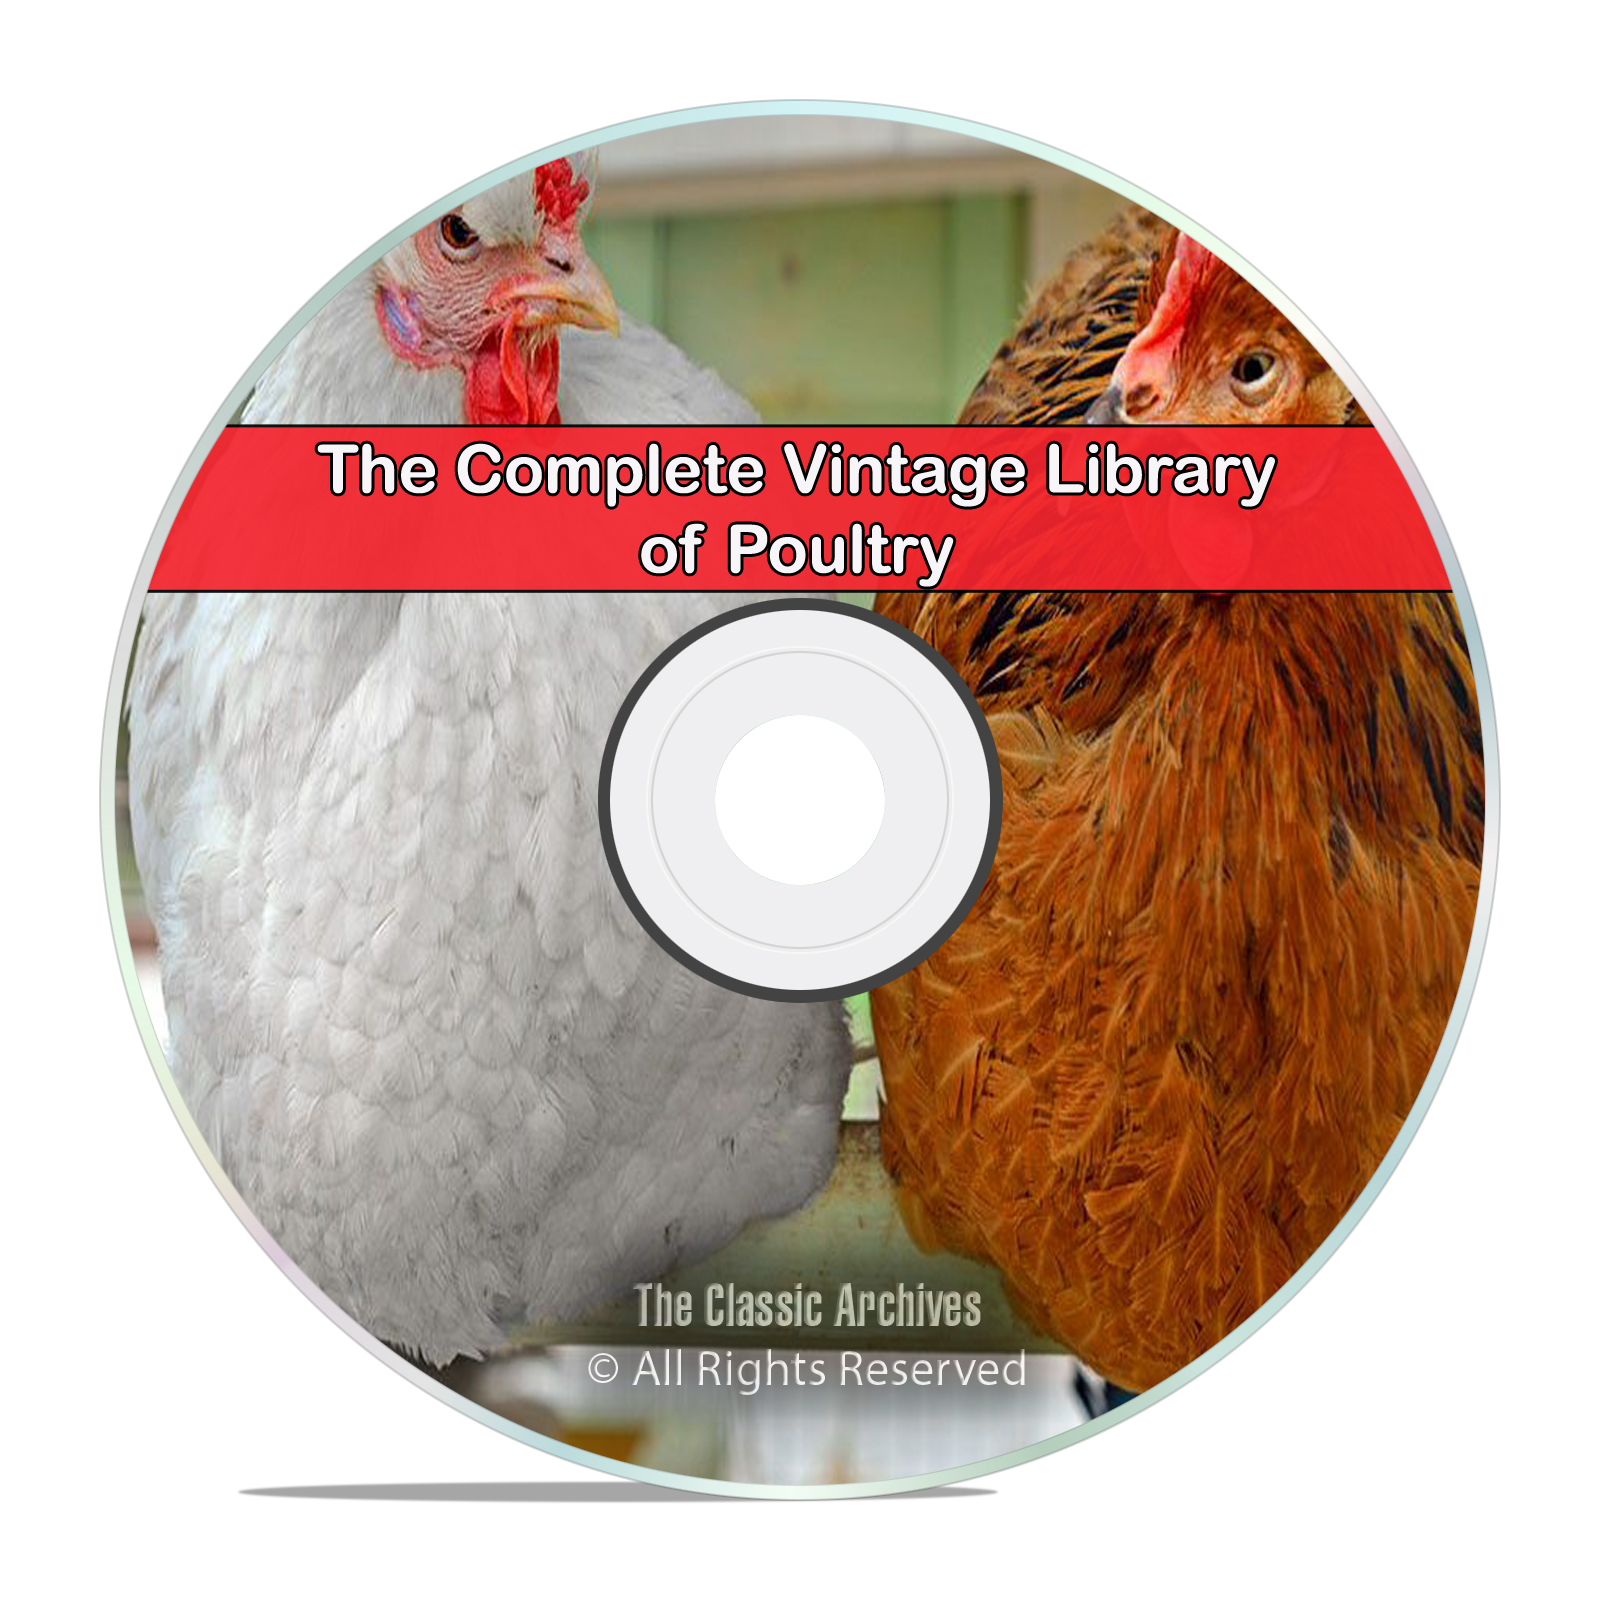 200 Books Library of Poultry, Chickens, Farming, Raise, Fowl, Squab, DVD